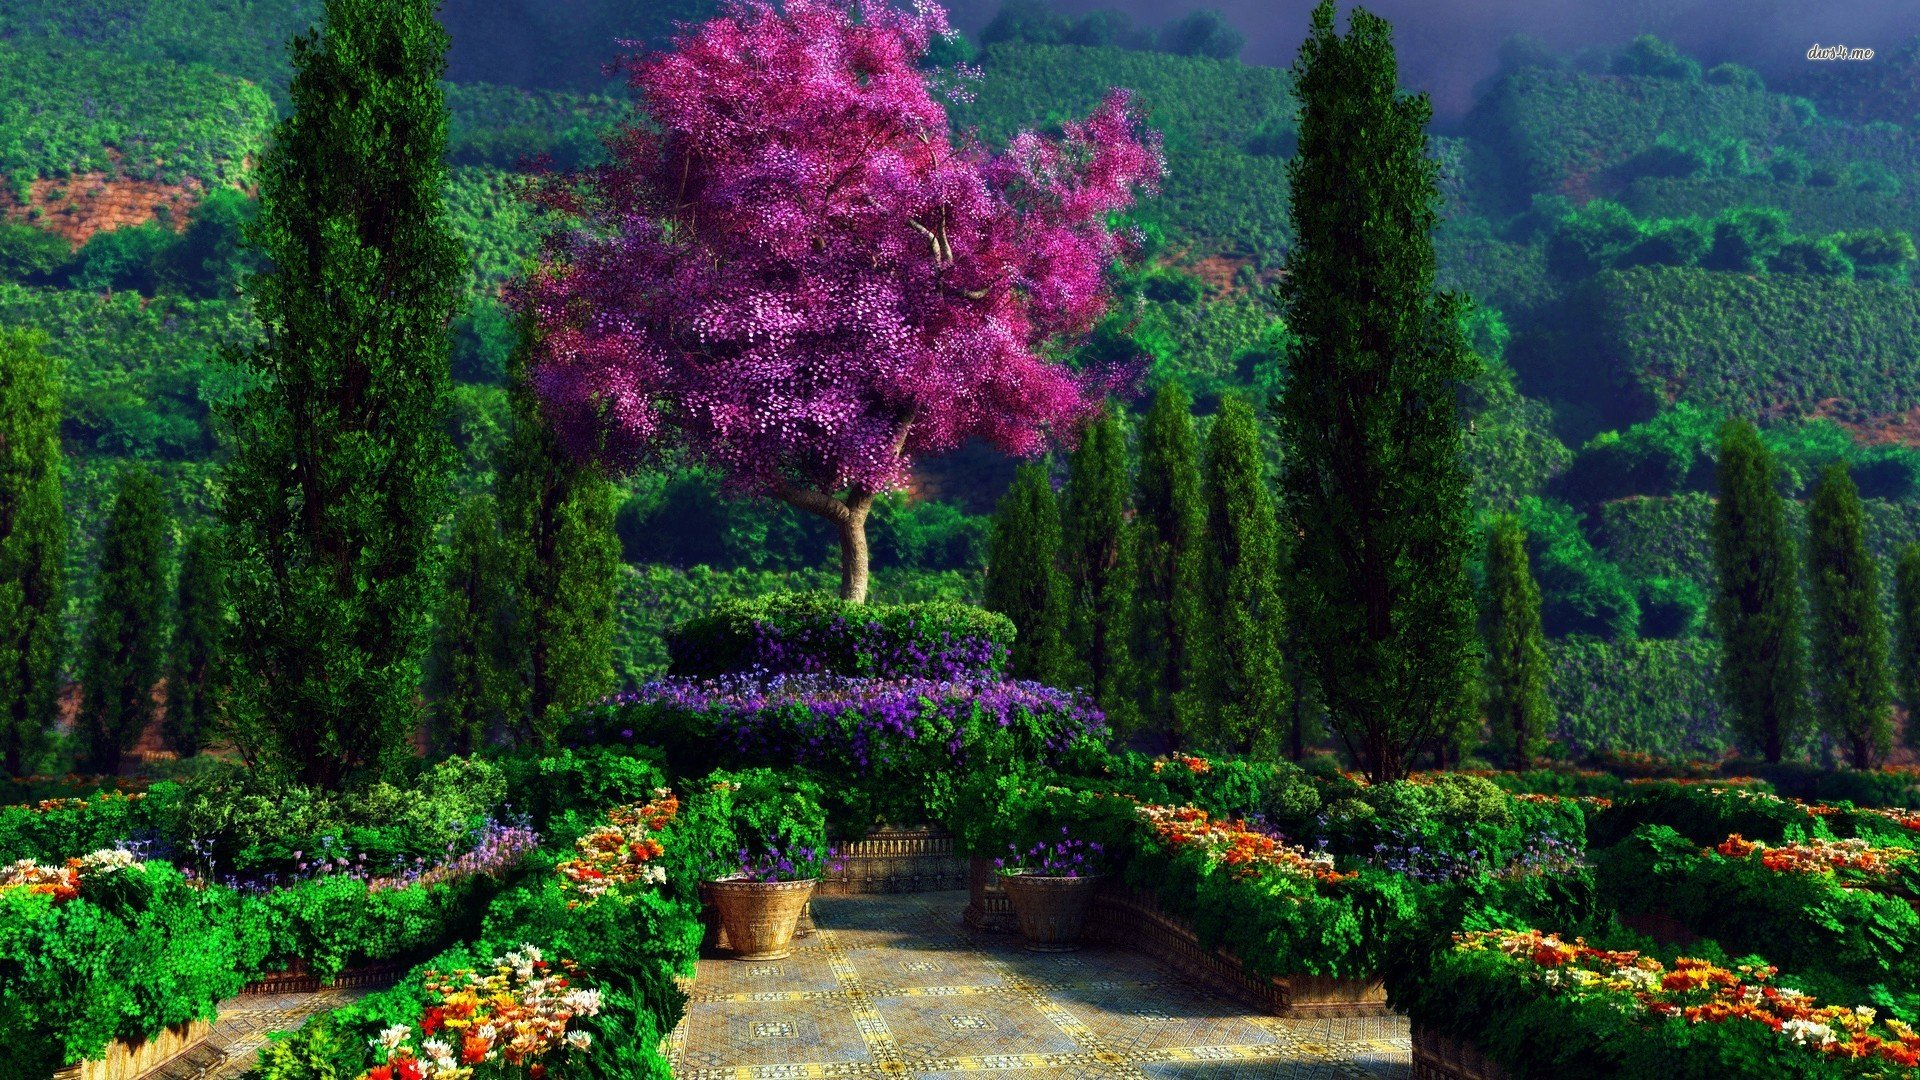 Garden Wallpapers 1920x1080 Full Hd 1080p Desktop Backgrounds